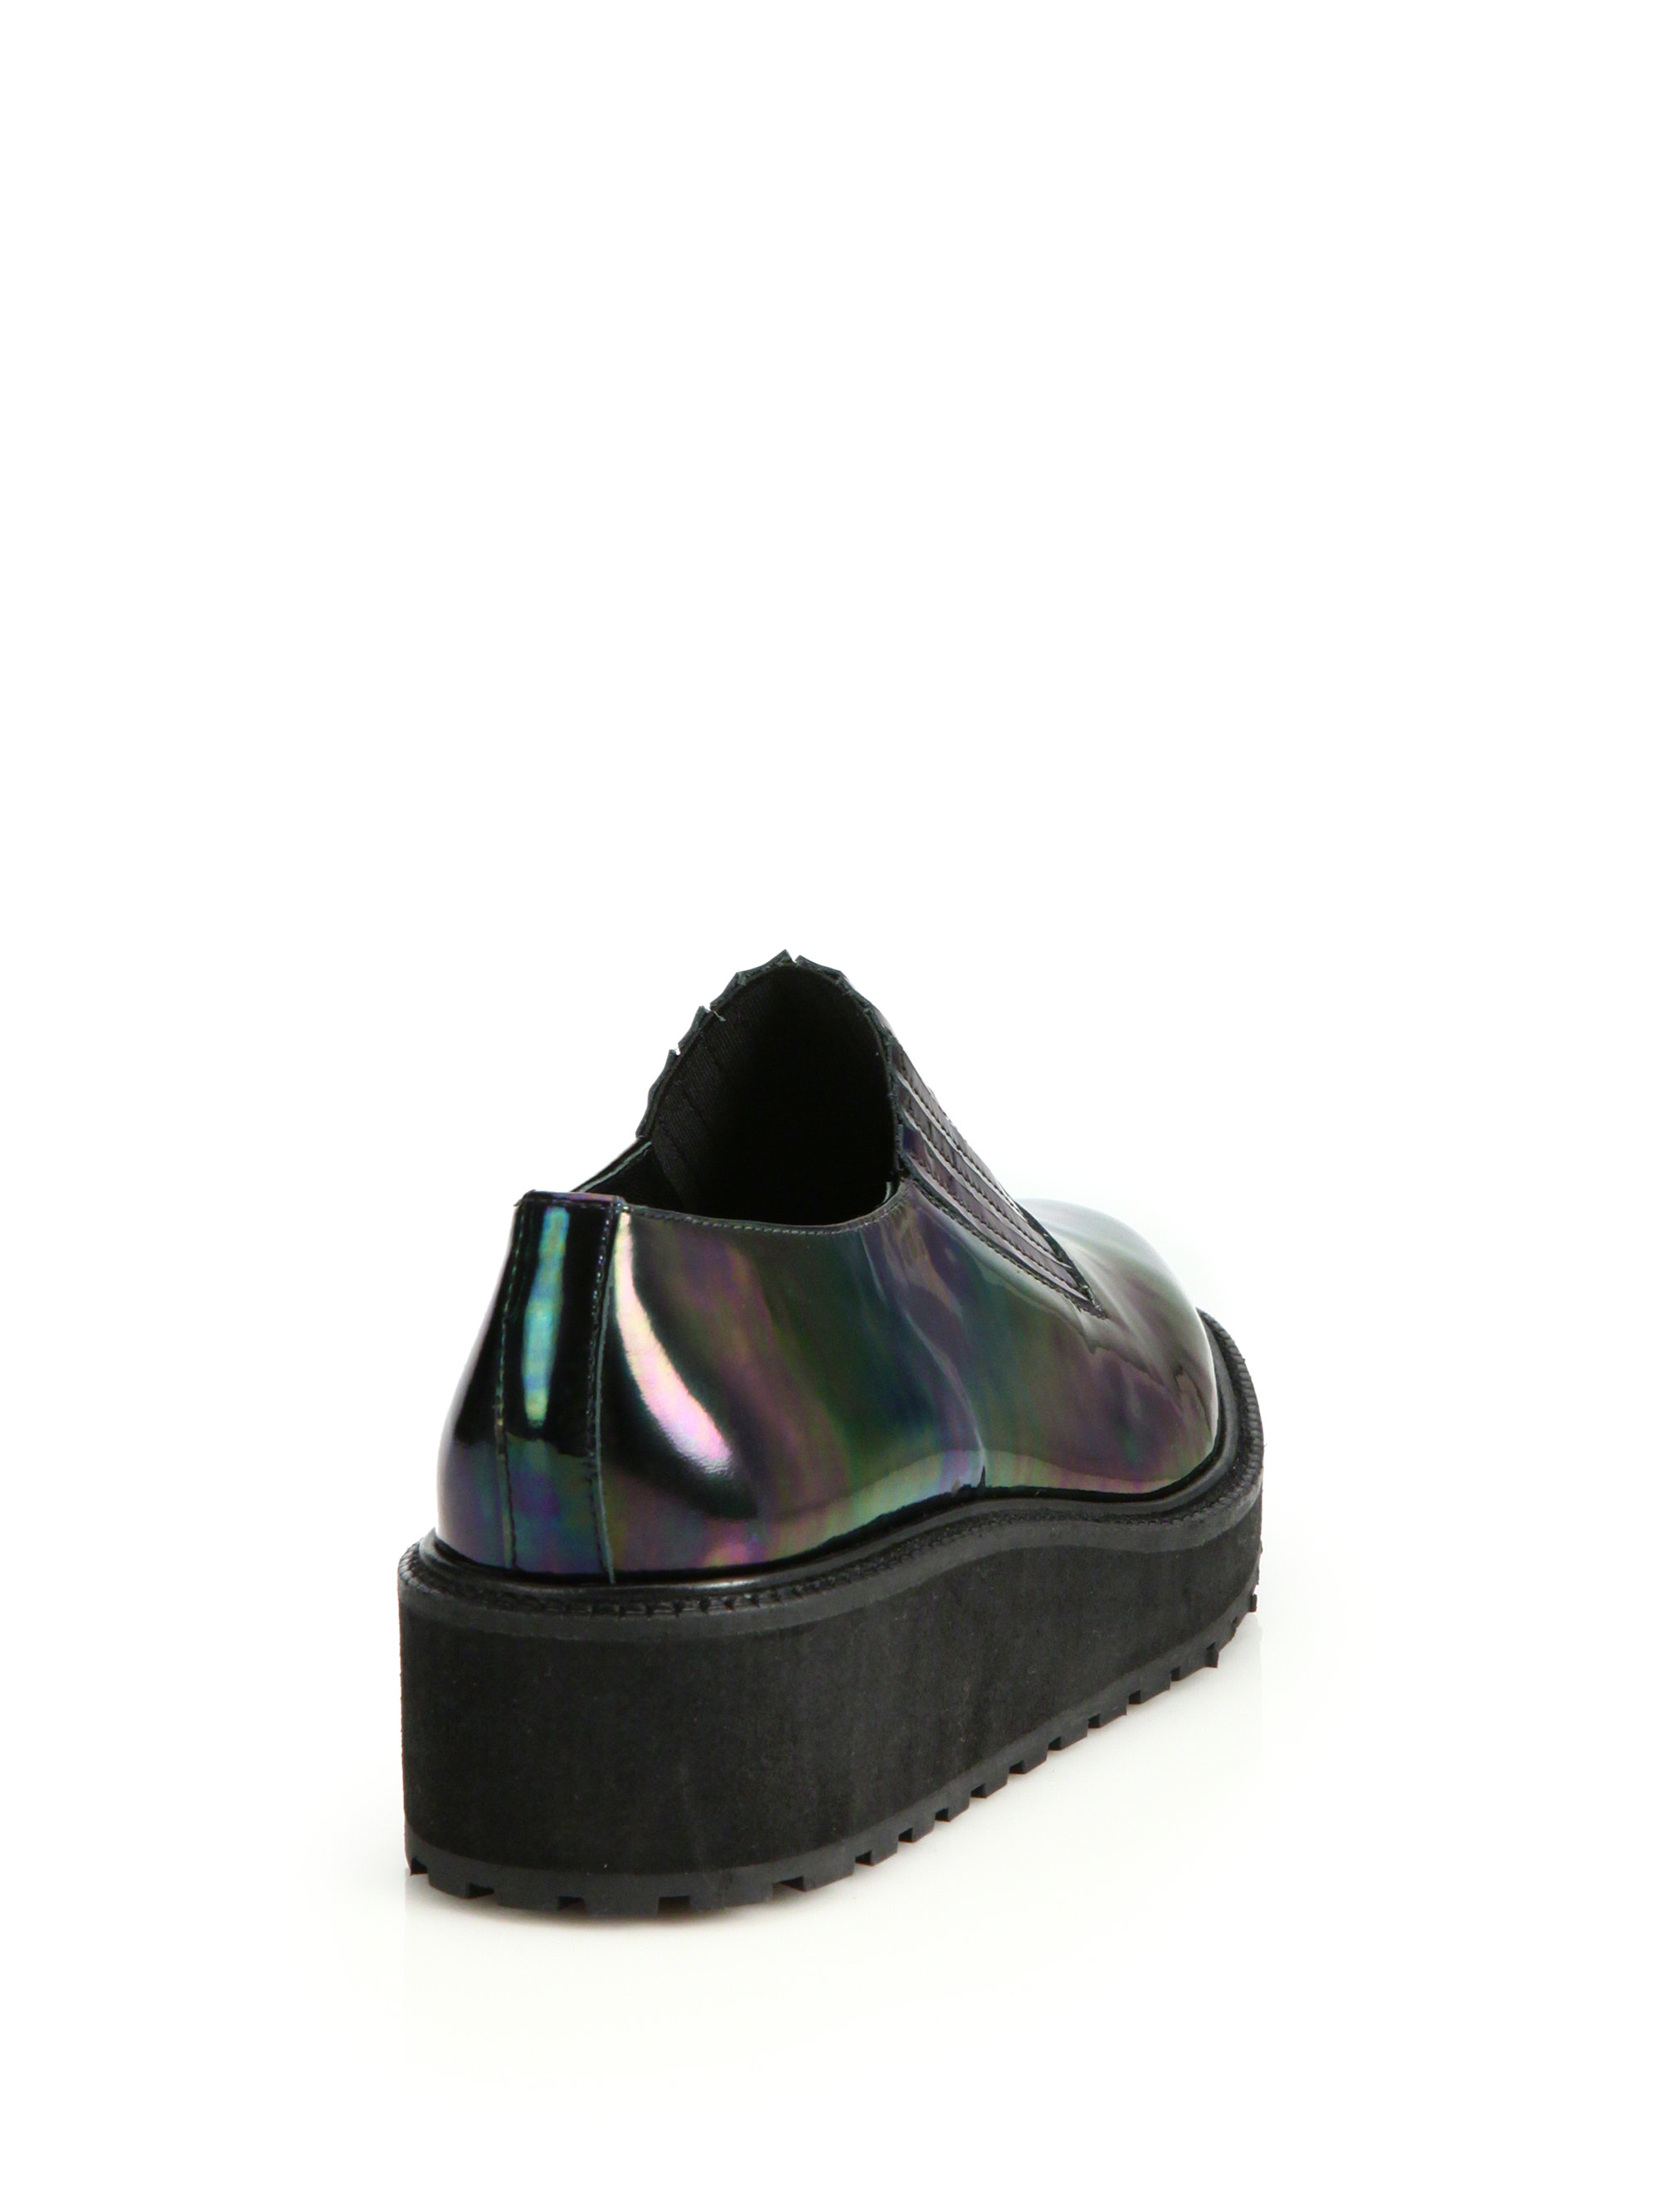 cheap price wholesale price Loeffler Randall Patent Leather Platform Sneakers shop for quality from china wholesale get authentic cheap price free shipping cheap online nJ9aq1ik